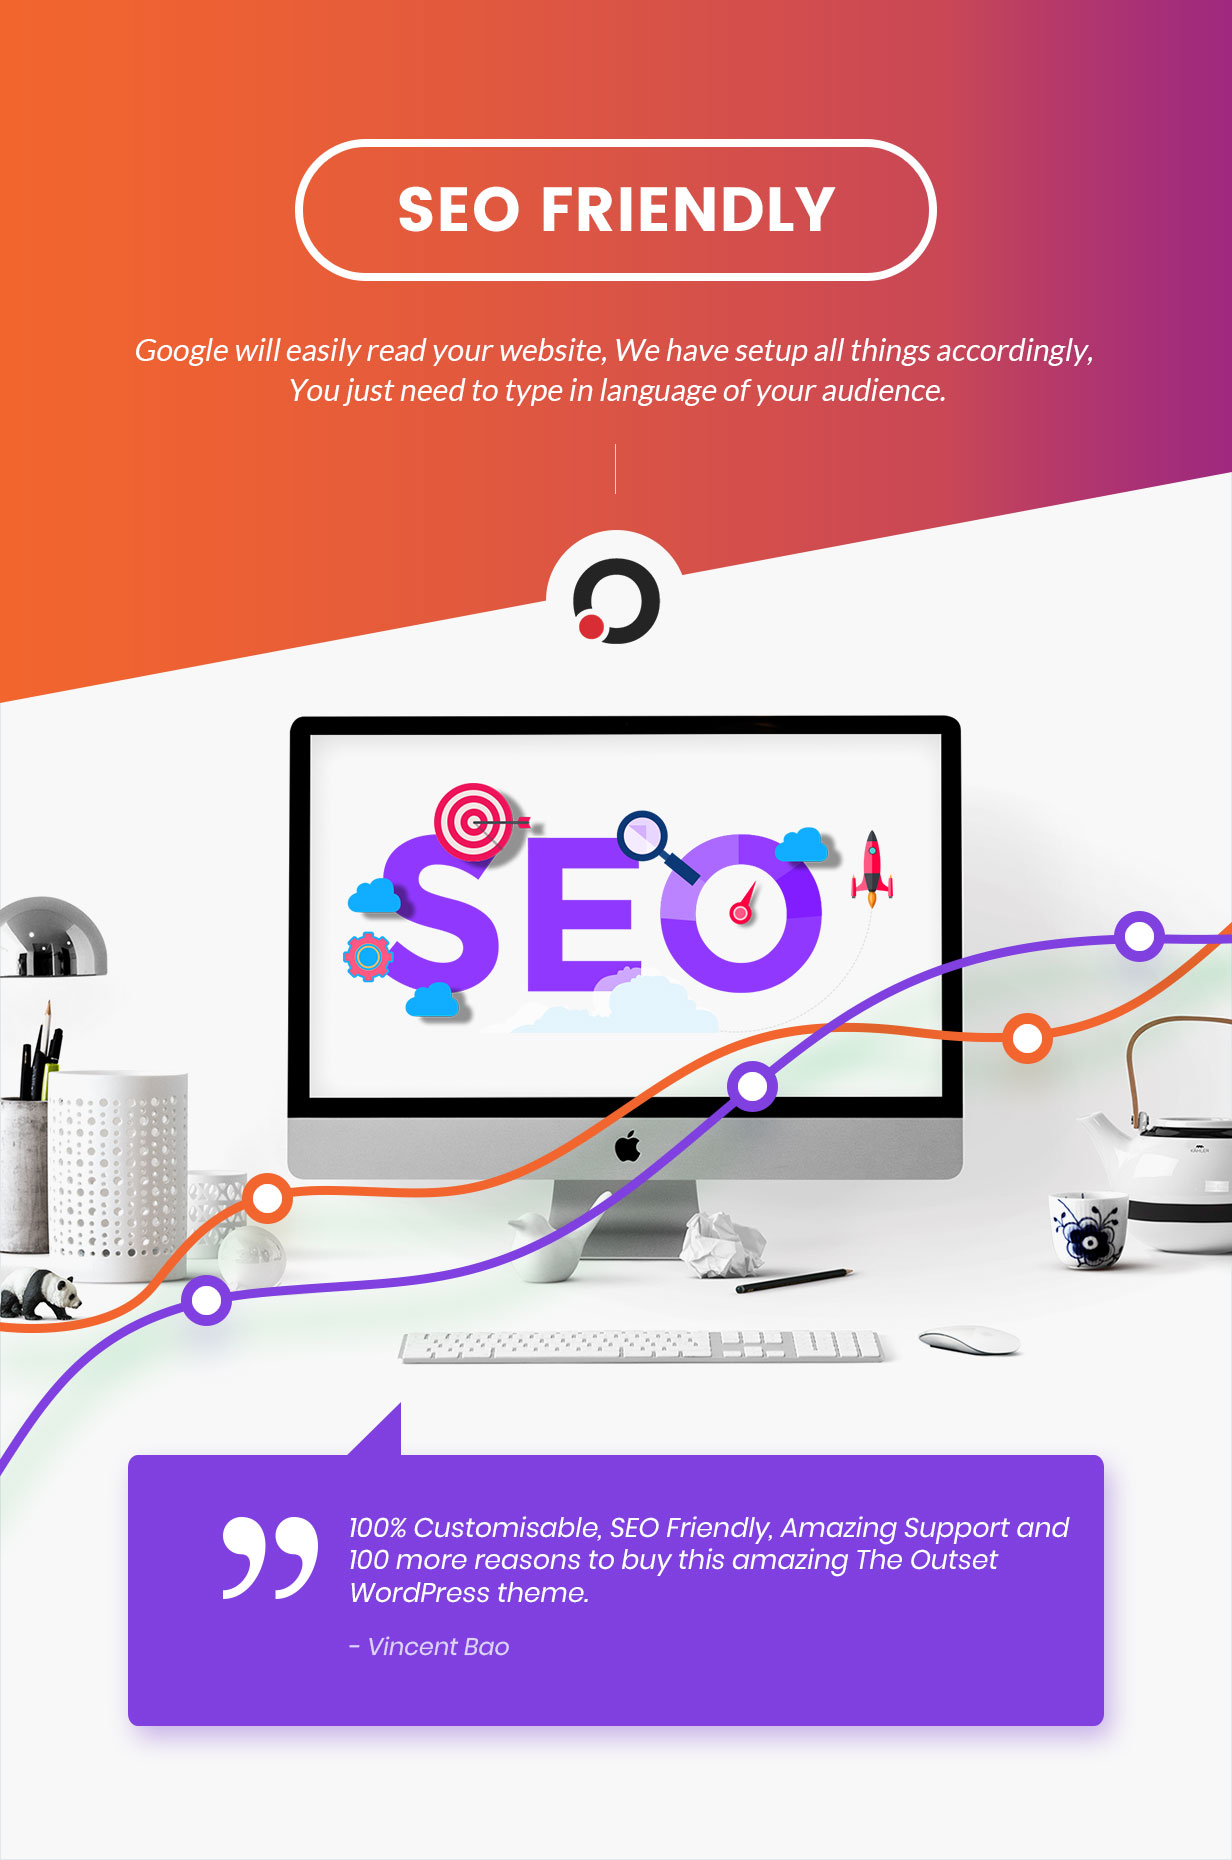 The Outset - SaaS, App, Product & Tech Software Startup Theme - 10